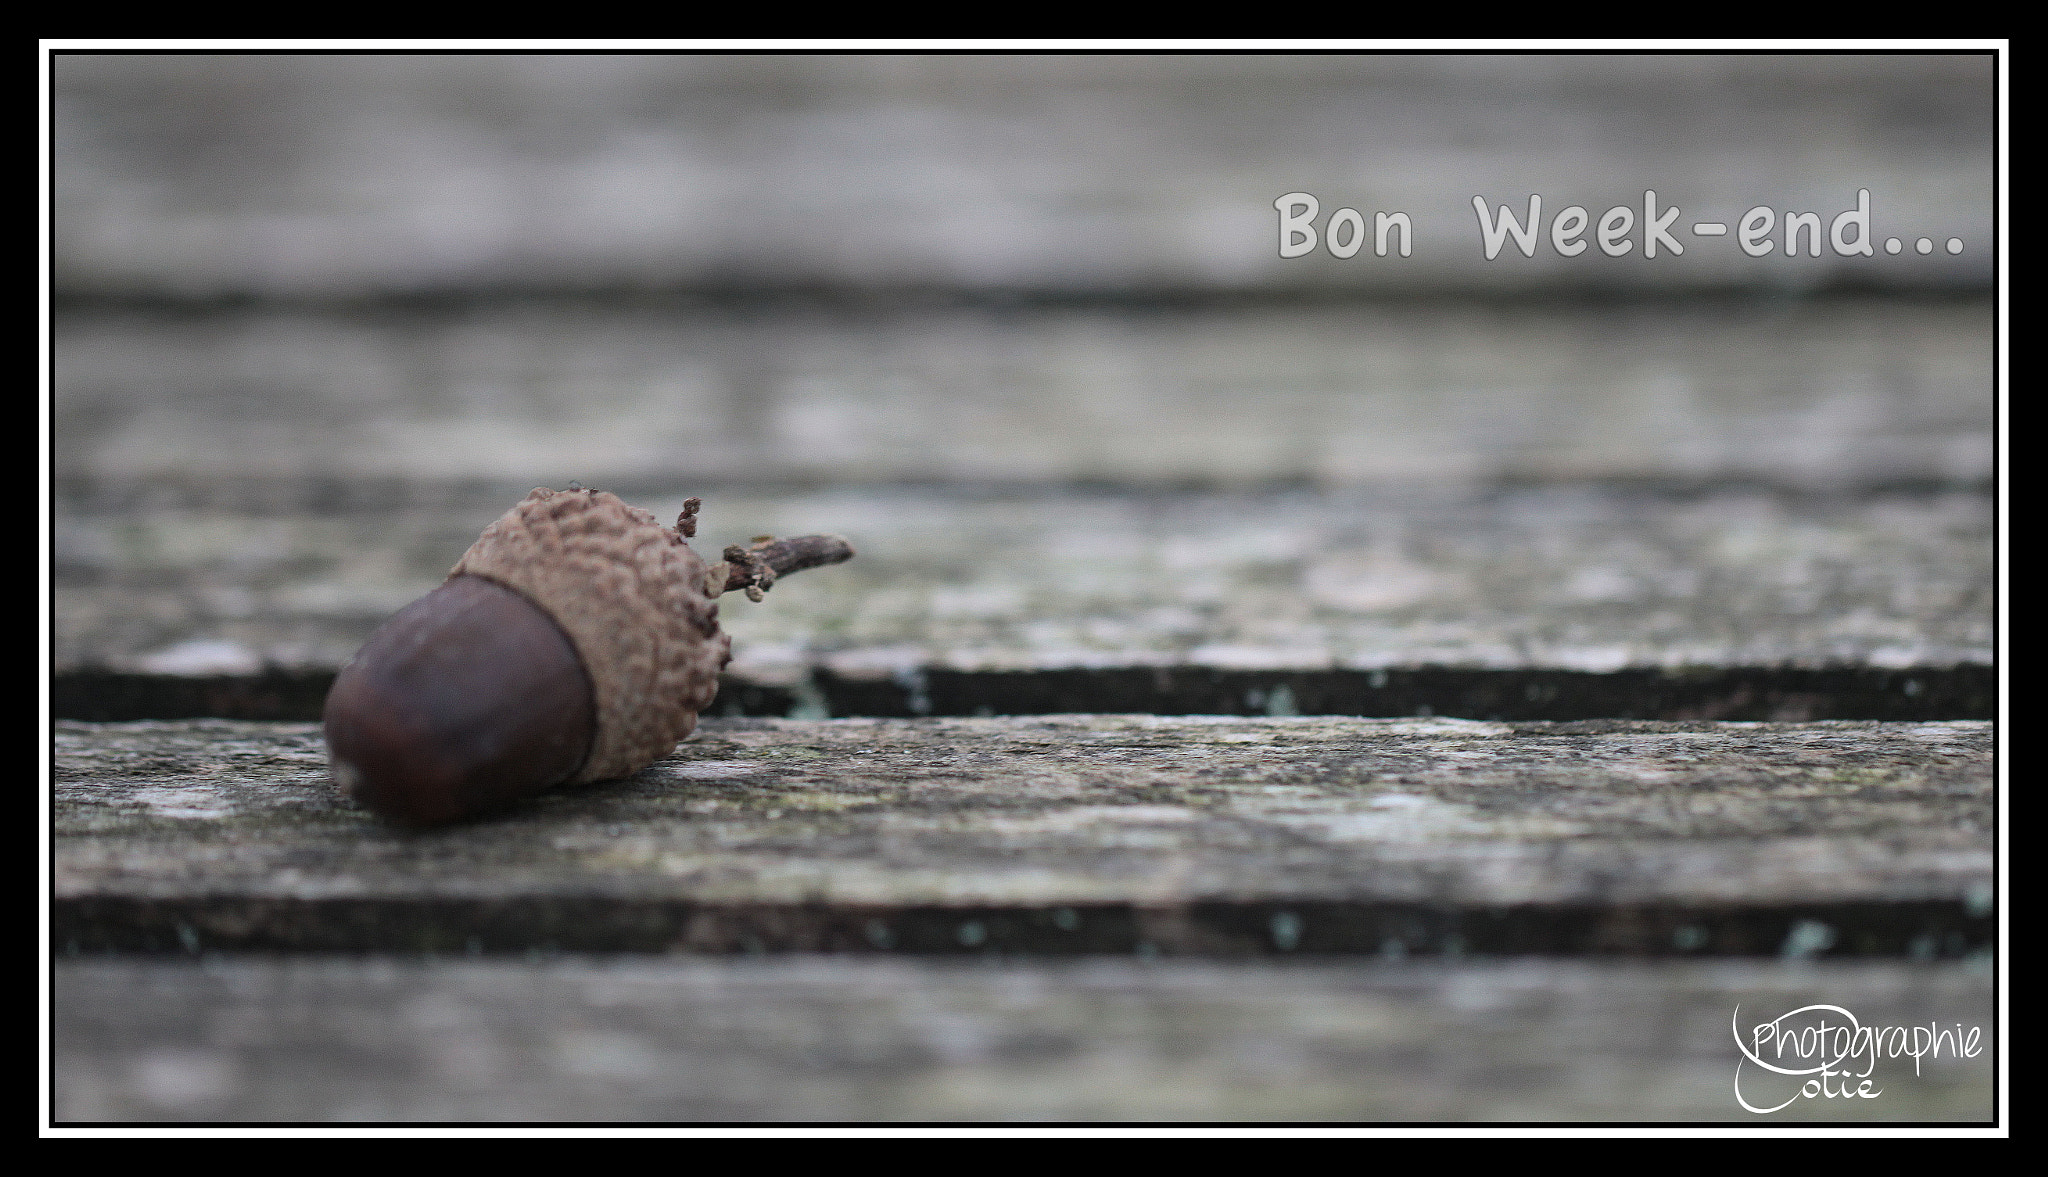 Photograph Have a nice Week-end! by Cotie Photographie on 500px